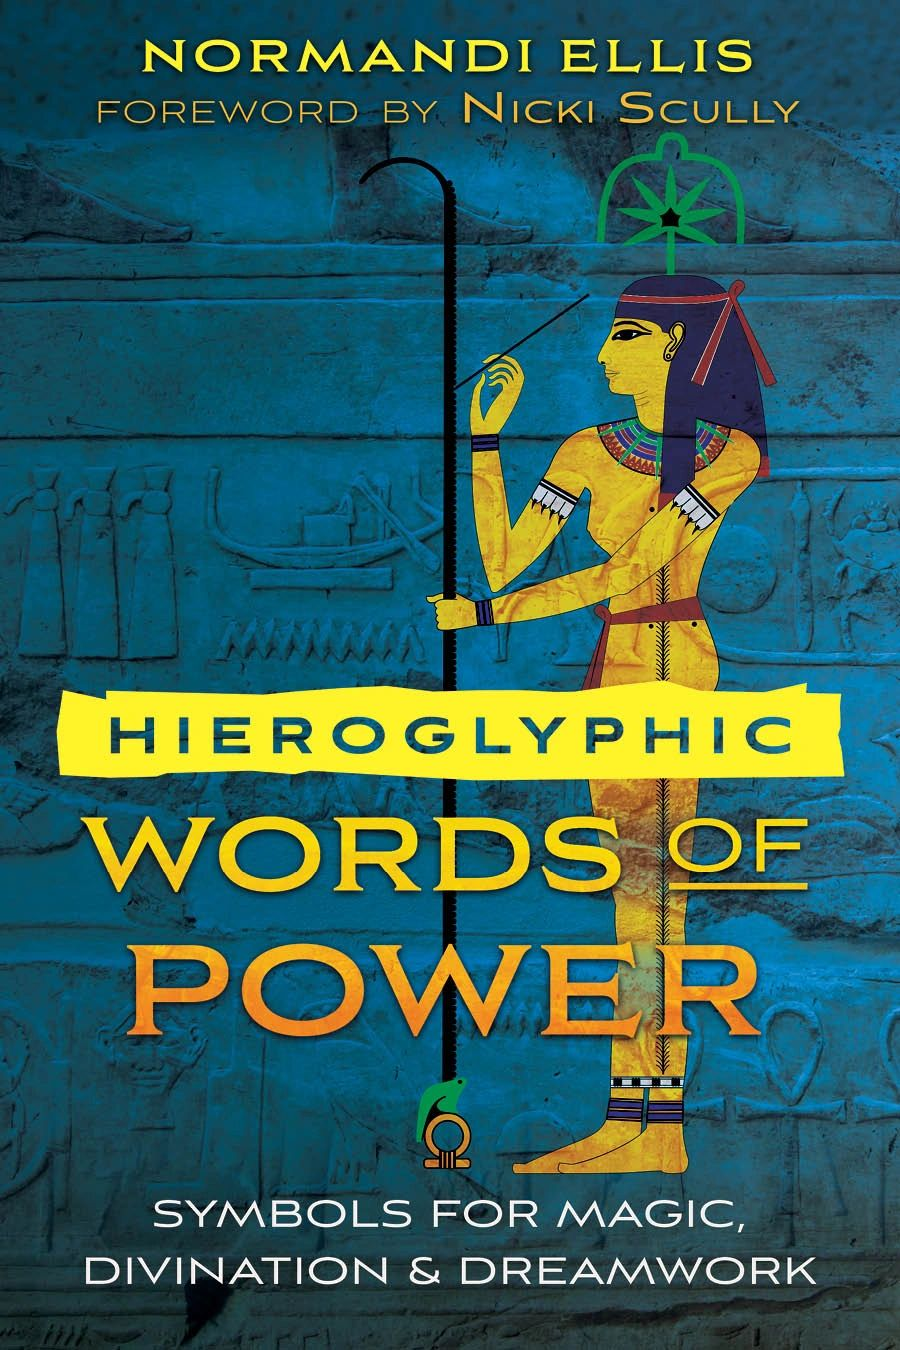 www.innertraditions.com/books/hieroglyphic-words-of-power